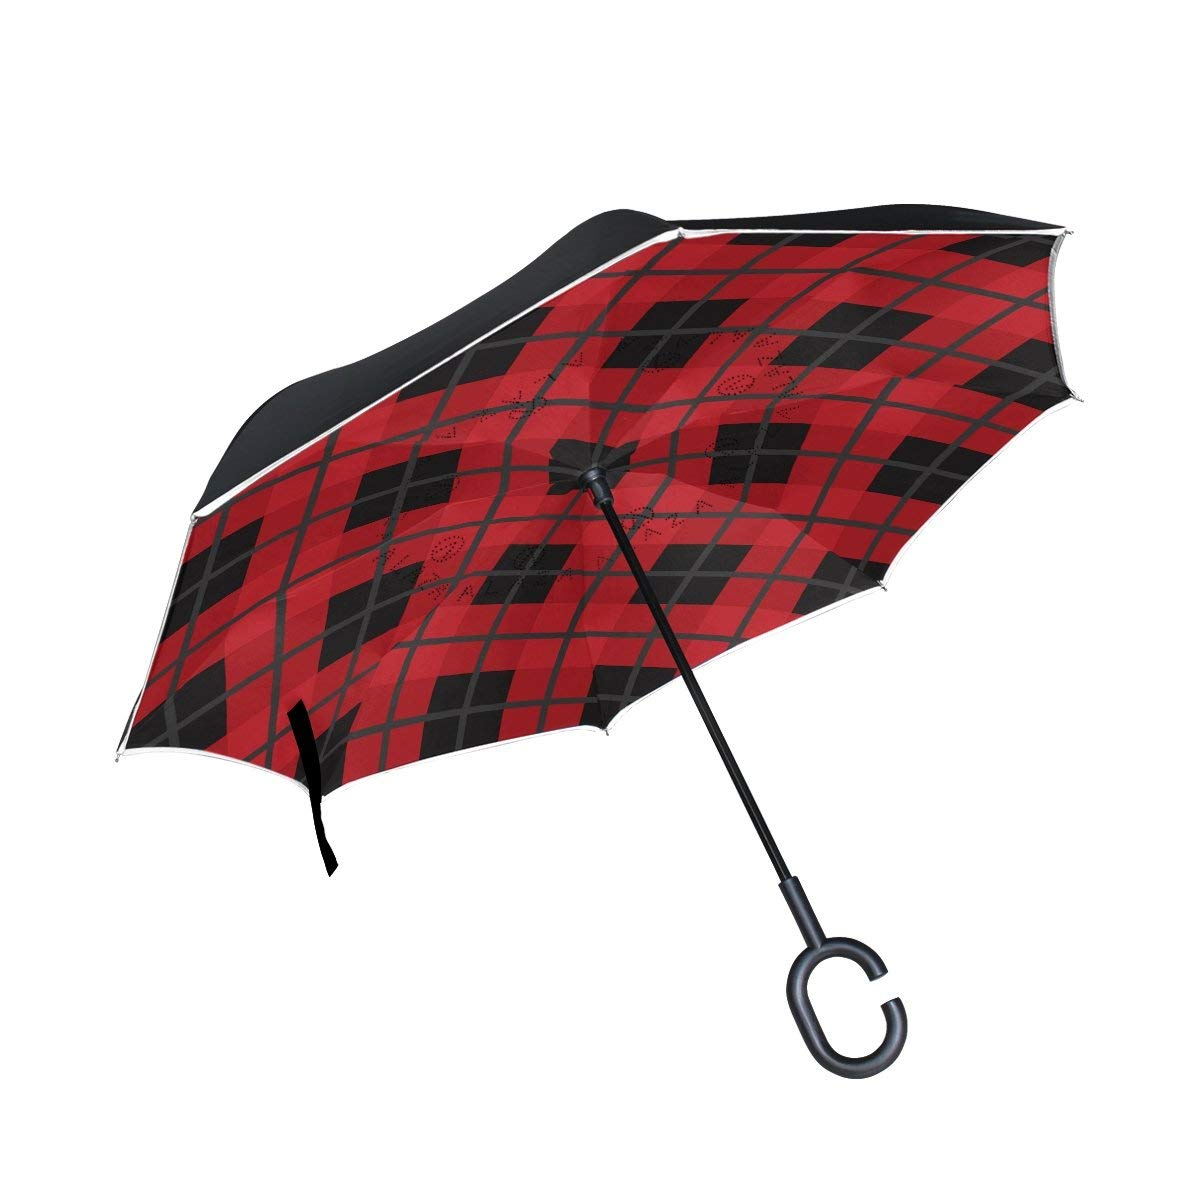 FOLPPLY Inverted Umbrella The Geometric Print,Double Layer Reverse Umbrella Waterproof for Car Rain Outdoor with C-Shaped Handle